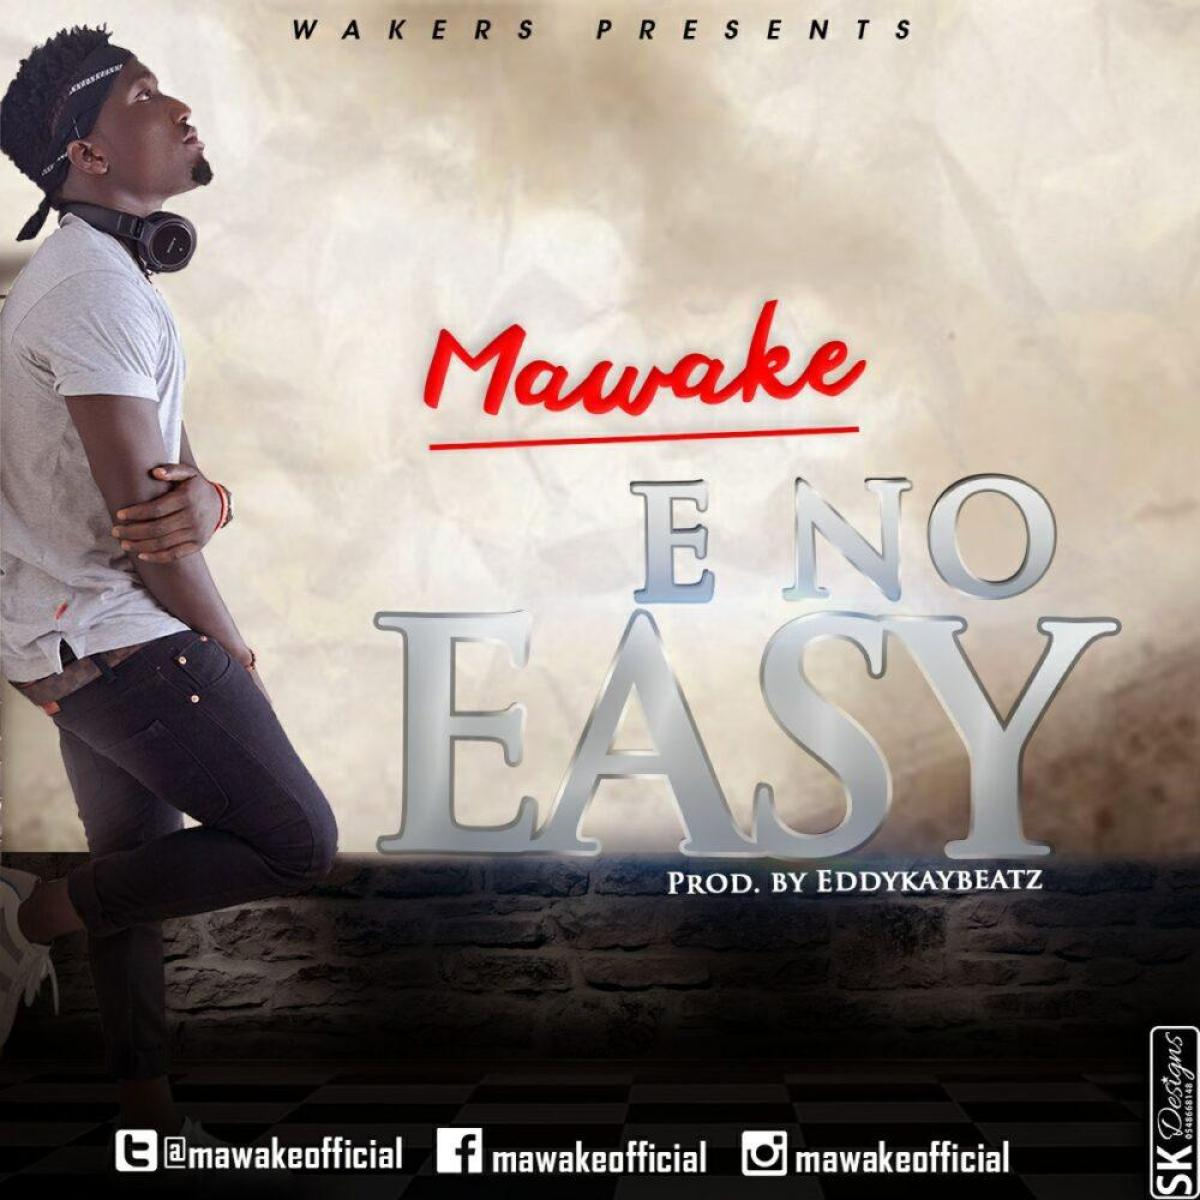 Mawake – E no easy (prod by Eddy Kay beatz)